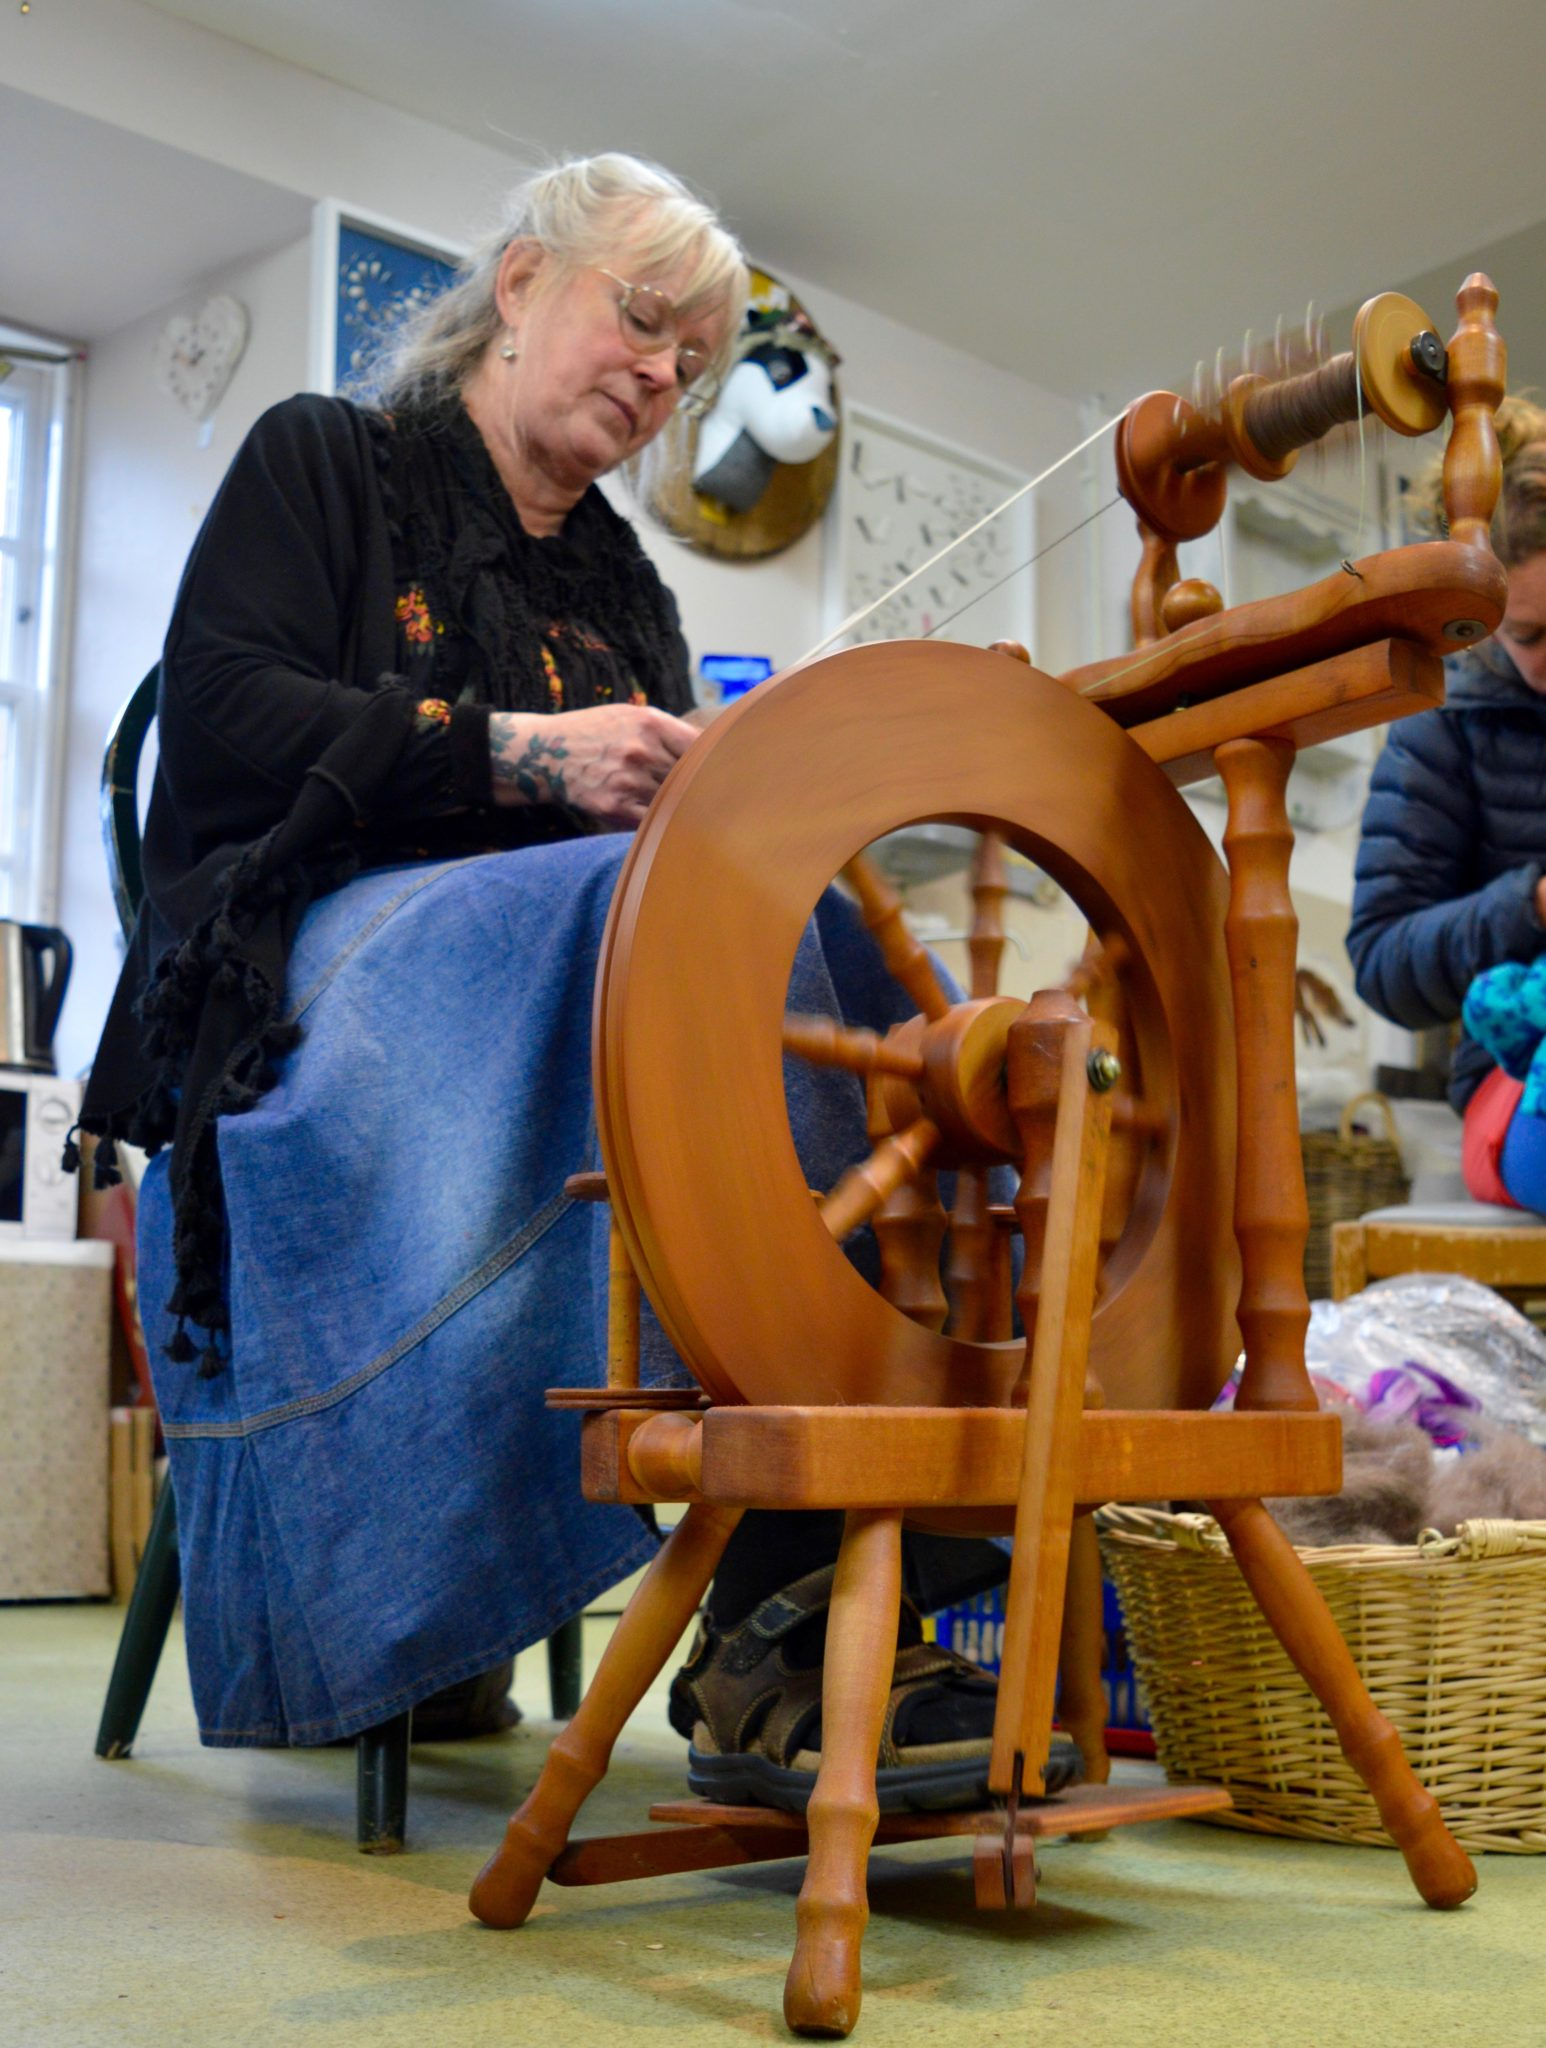 spinning course at hellygog, Logie Steading